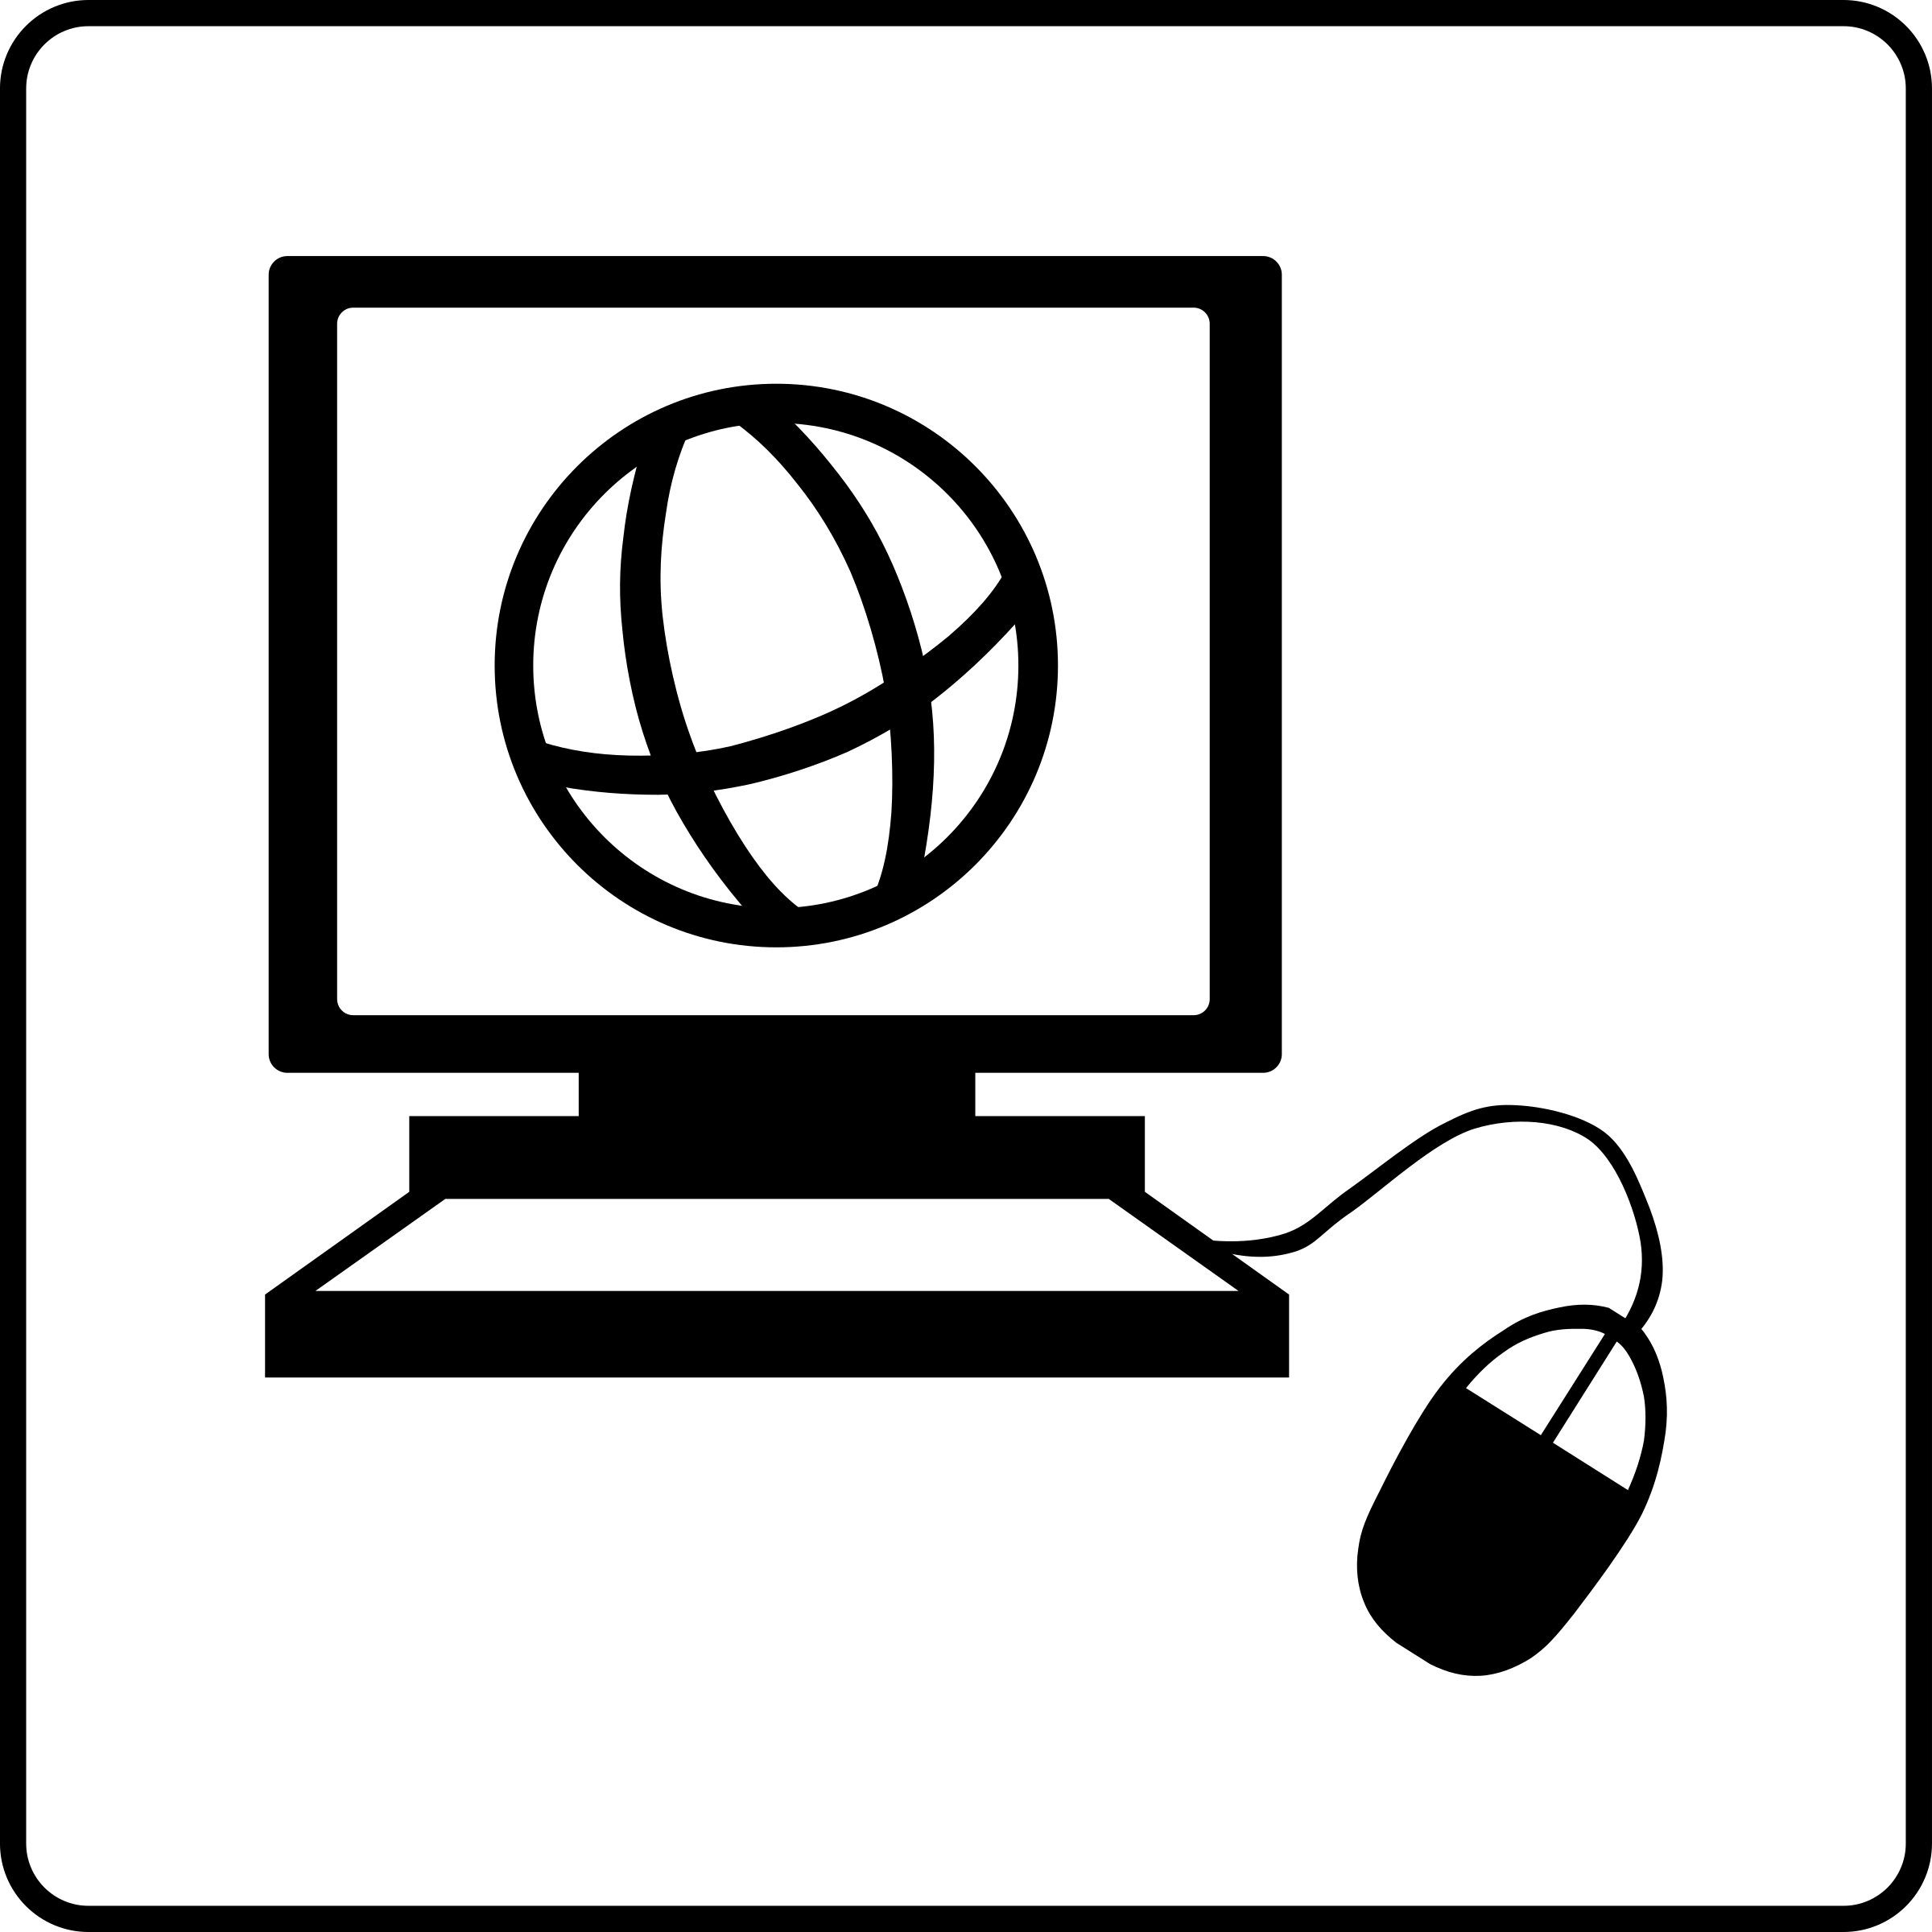 Internet Surfing Clipart Black And White.